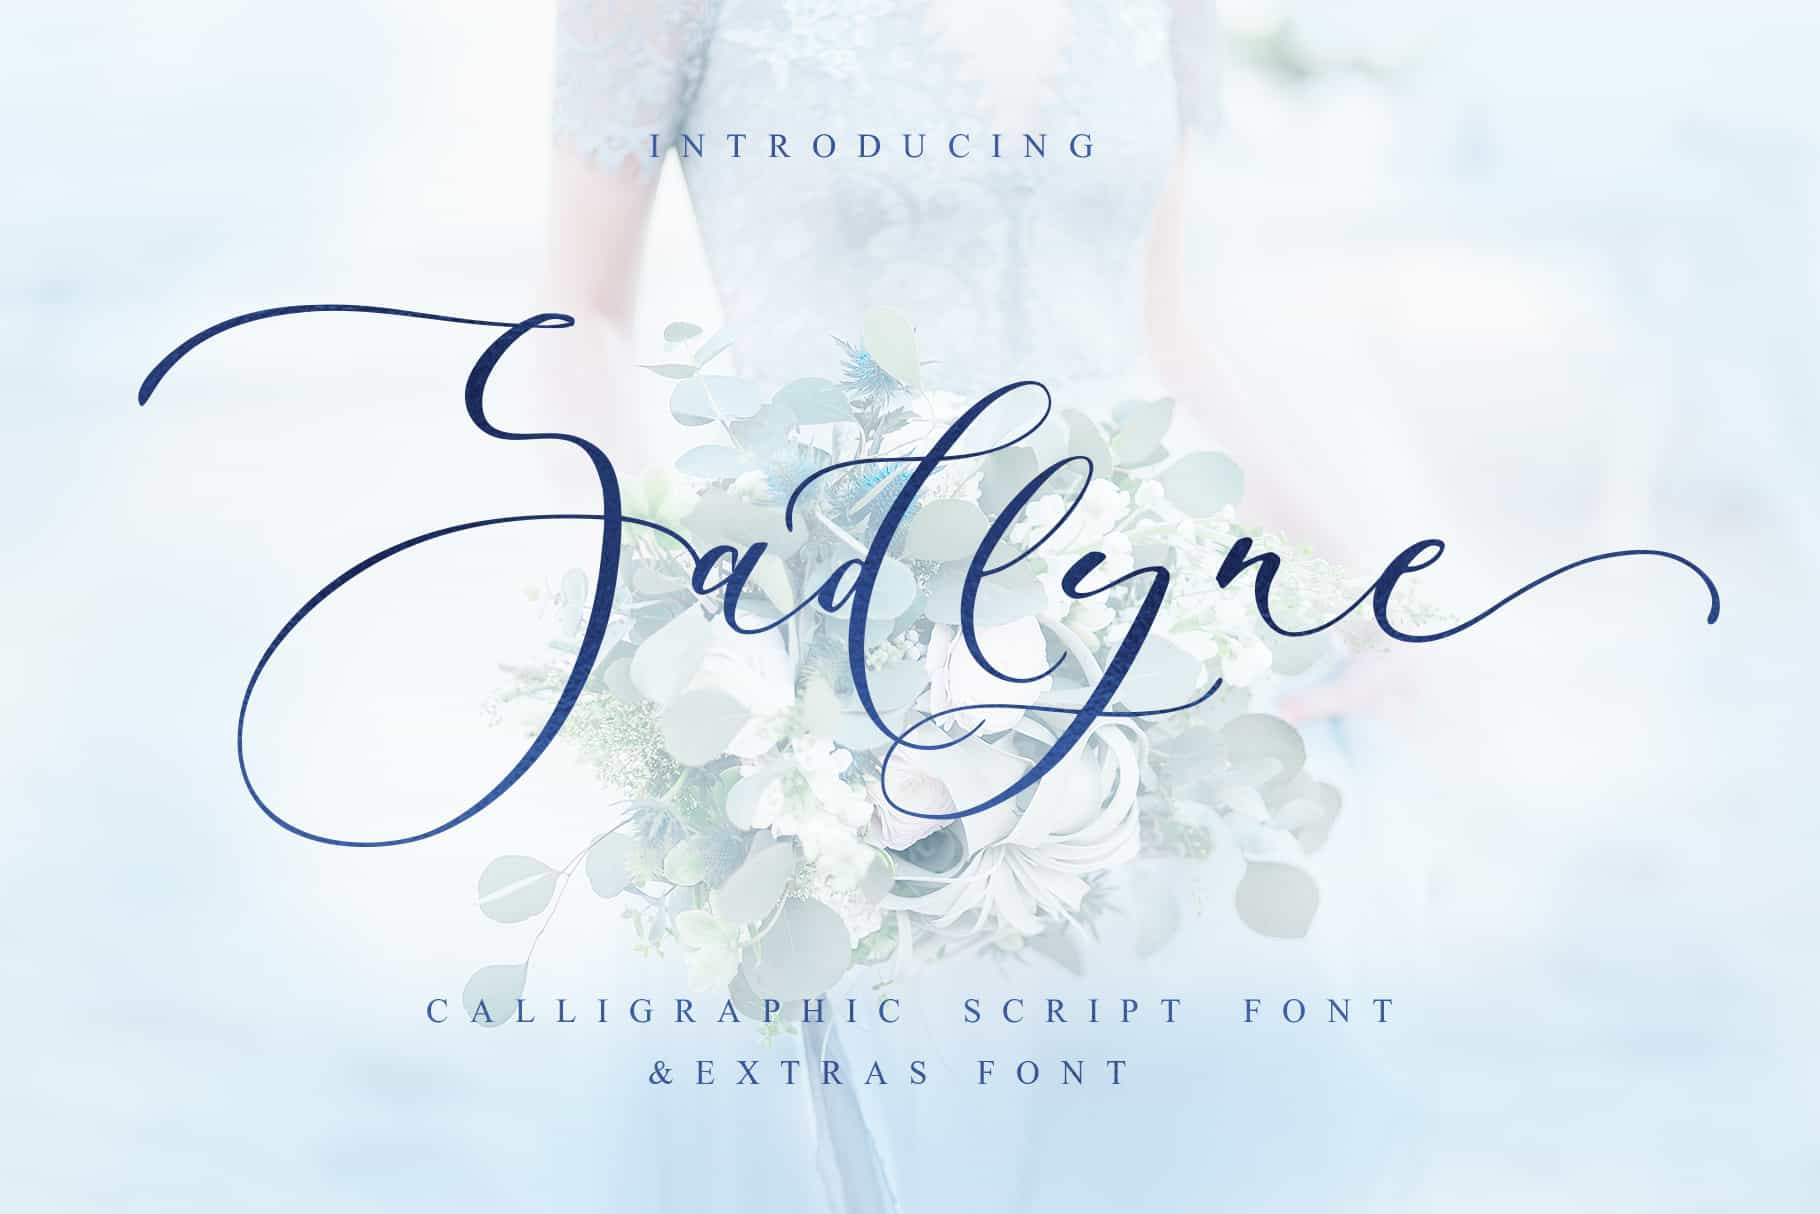 The Stylish Calligraphy Font Bundle - 12 Exclusive Fonts-Fonts-Artixty